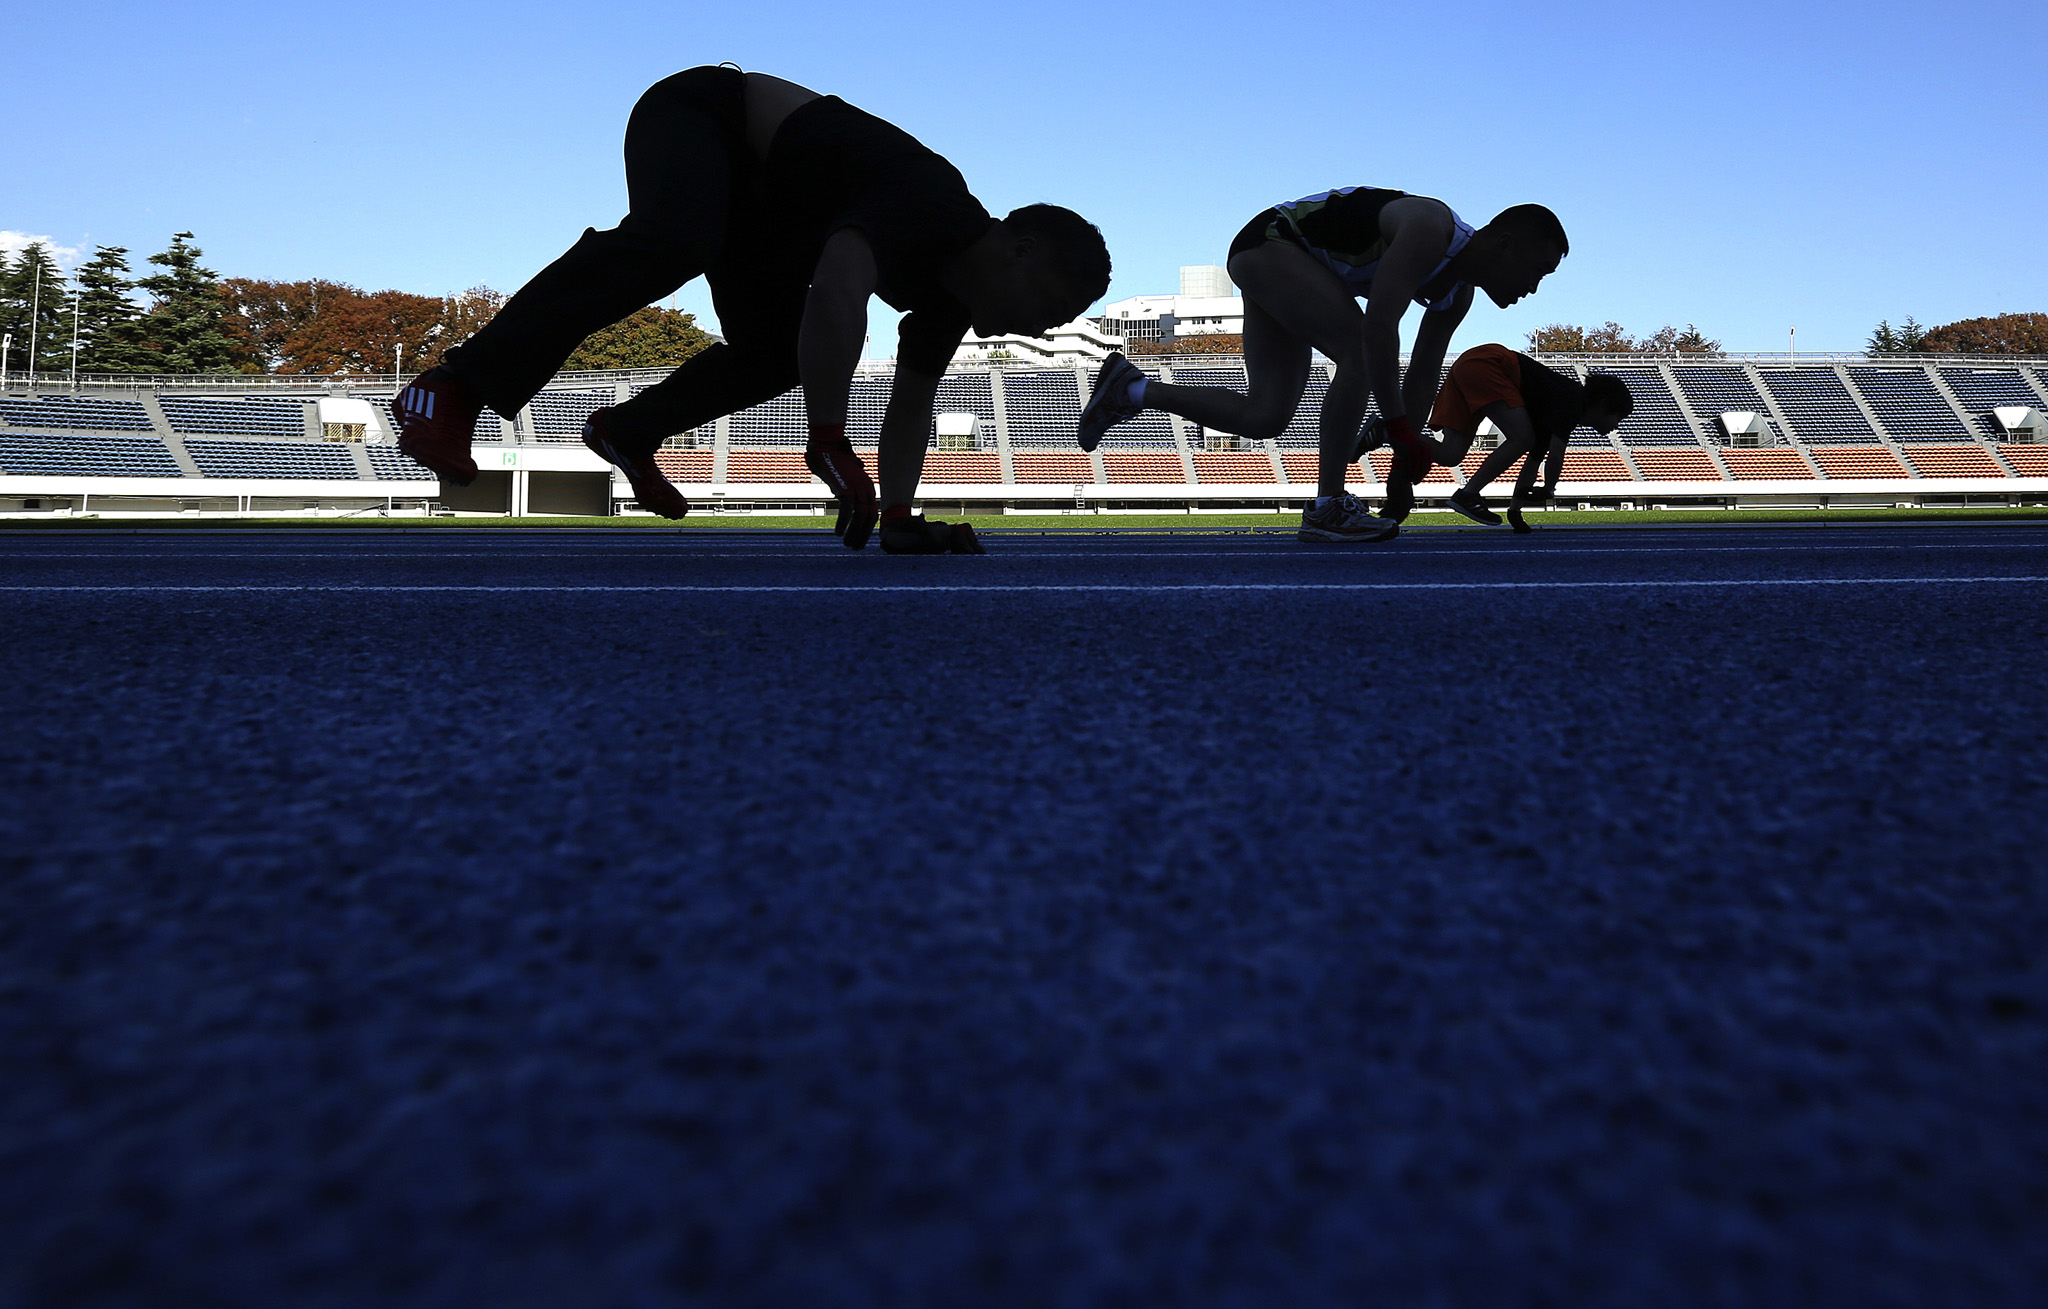 Katsumi Tamakoshi...Competitors run on their arms and legs on a race course in a preliminary race during the Guinness World Record the 100-meter running on all fours at Komazawa Olympic Park Stadium in Tokyo Thursday, Nov. 13, 2014 in celebration of Guinness World Records Day. The 18-year-old Japanese Katsumi Tamakoshi set new record of 15.86 seconds Thursday. (AP Photo/Eugene Hoshiko)